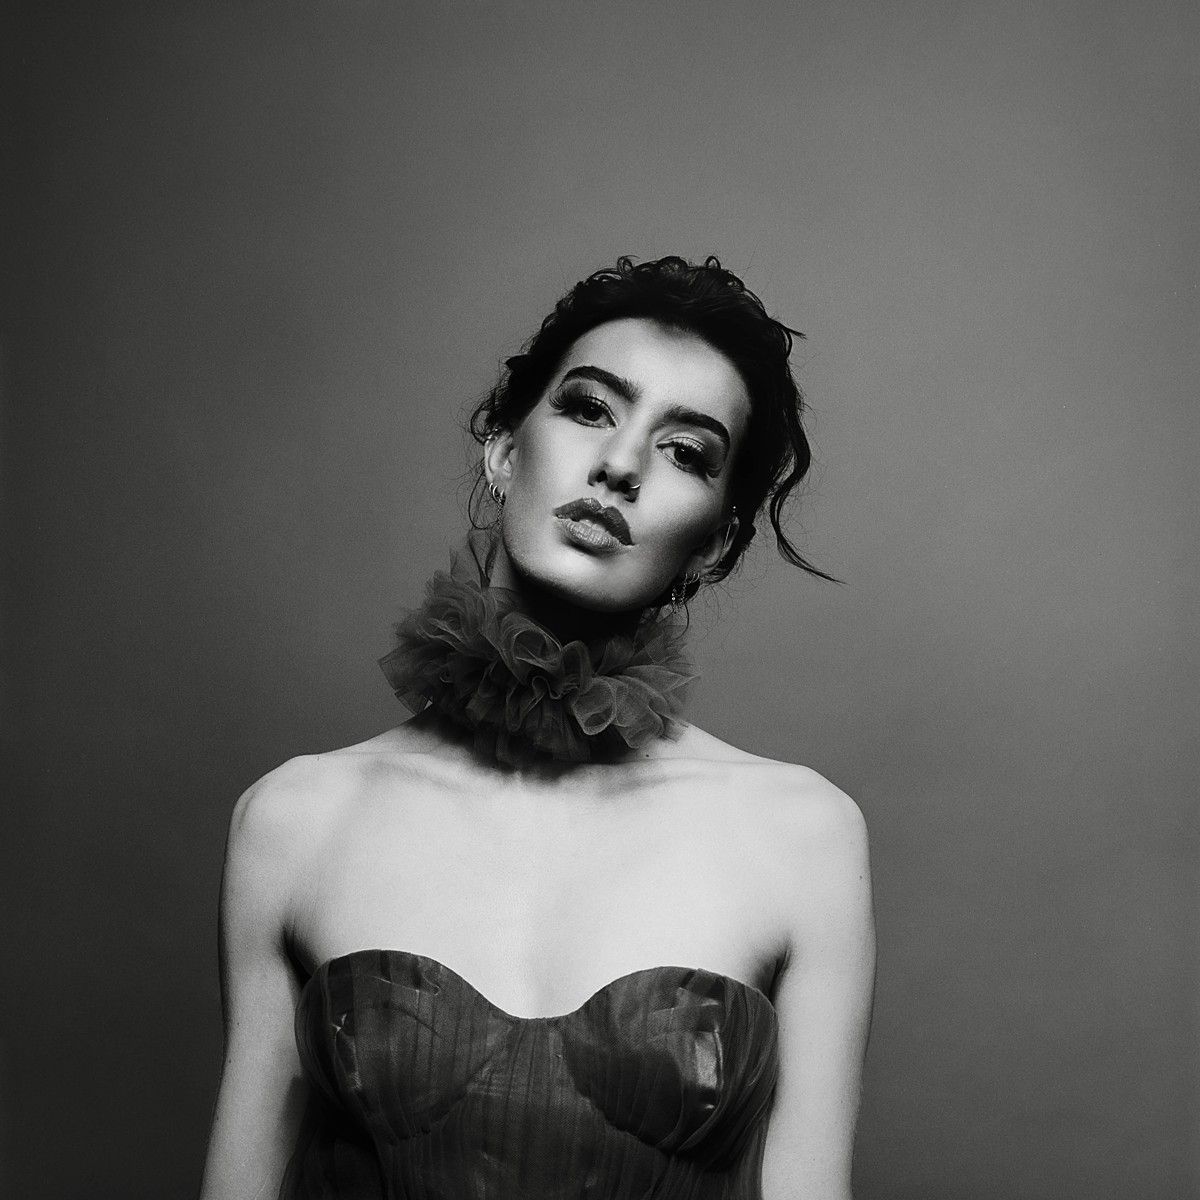 black and white studio fashion portrait a la richard avedon on kodak tri-x 400 film and hasselblad 202fa